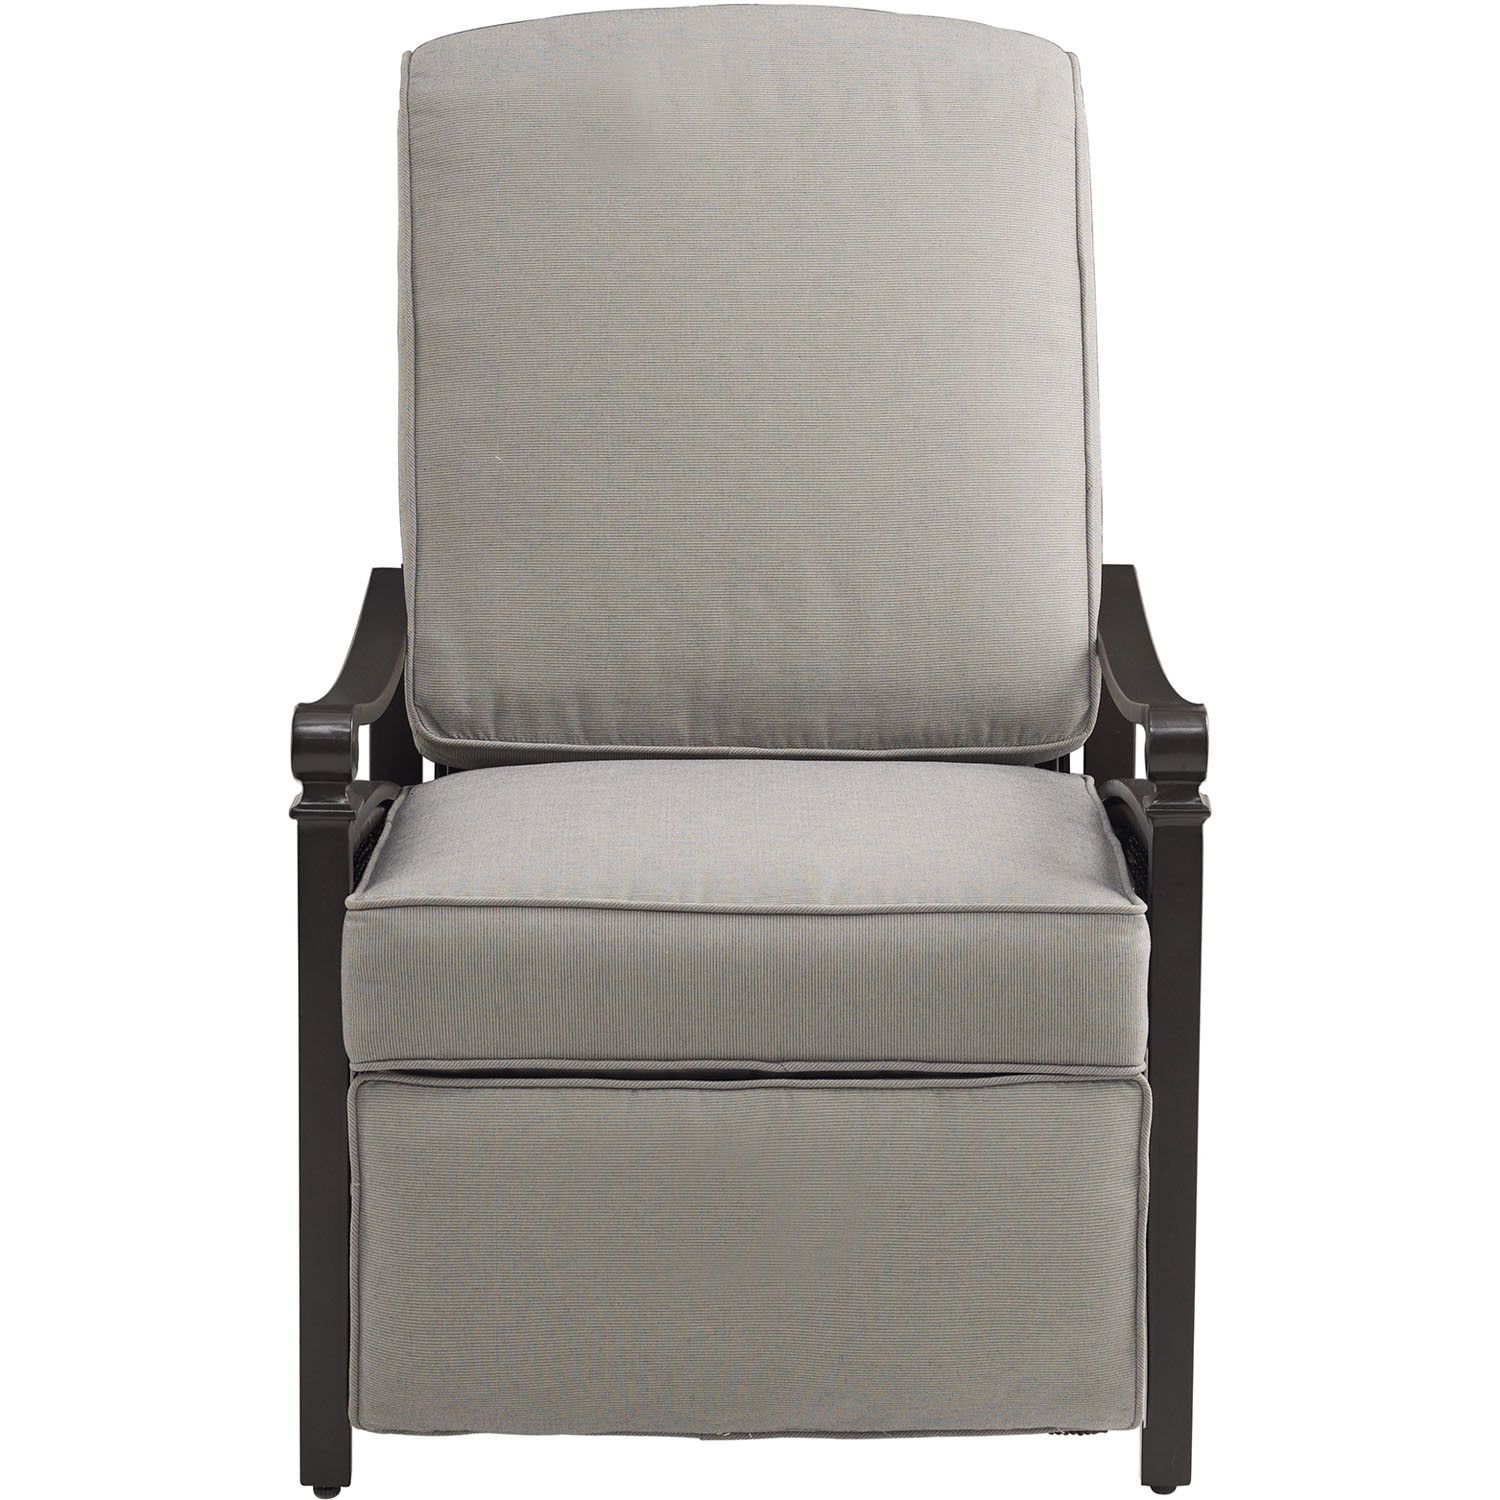 Carrie outdoor recliner chair products pinterest recliner and